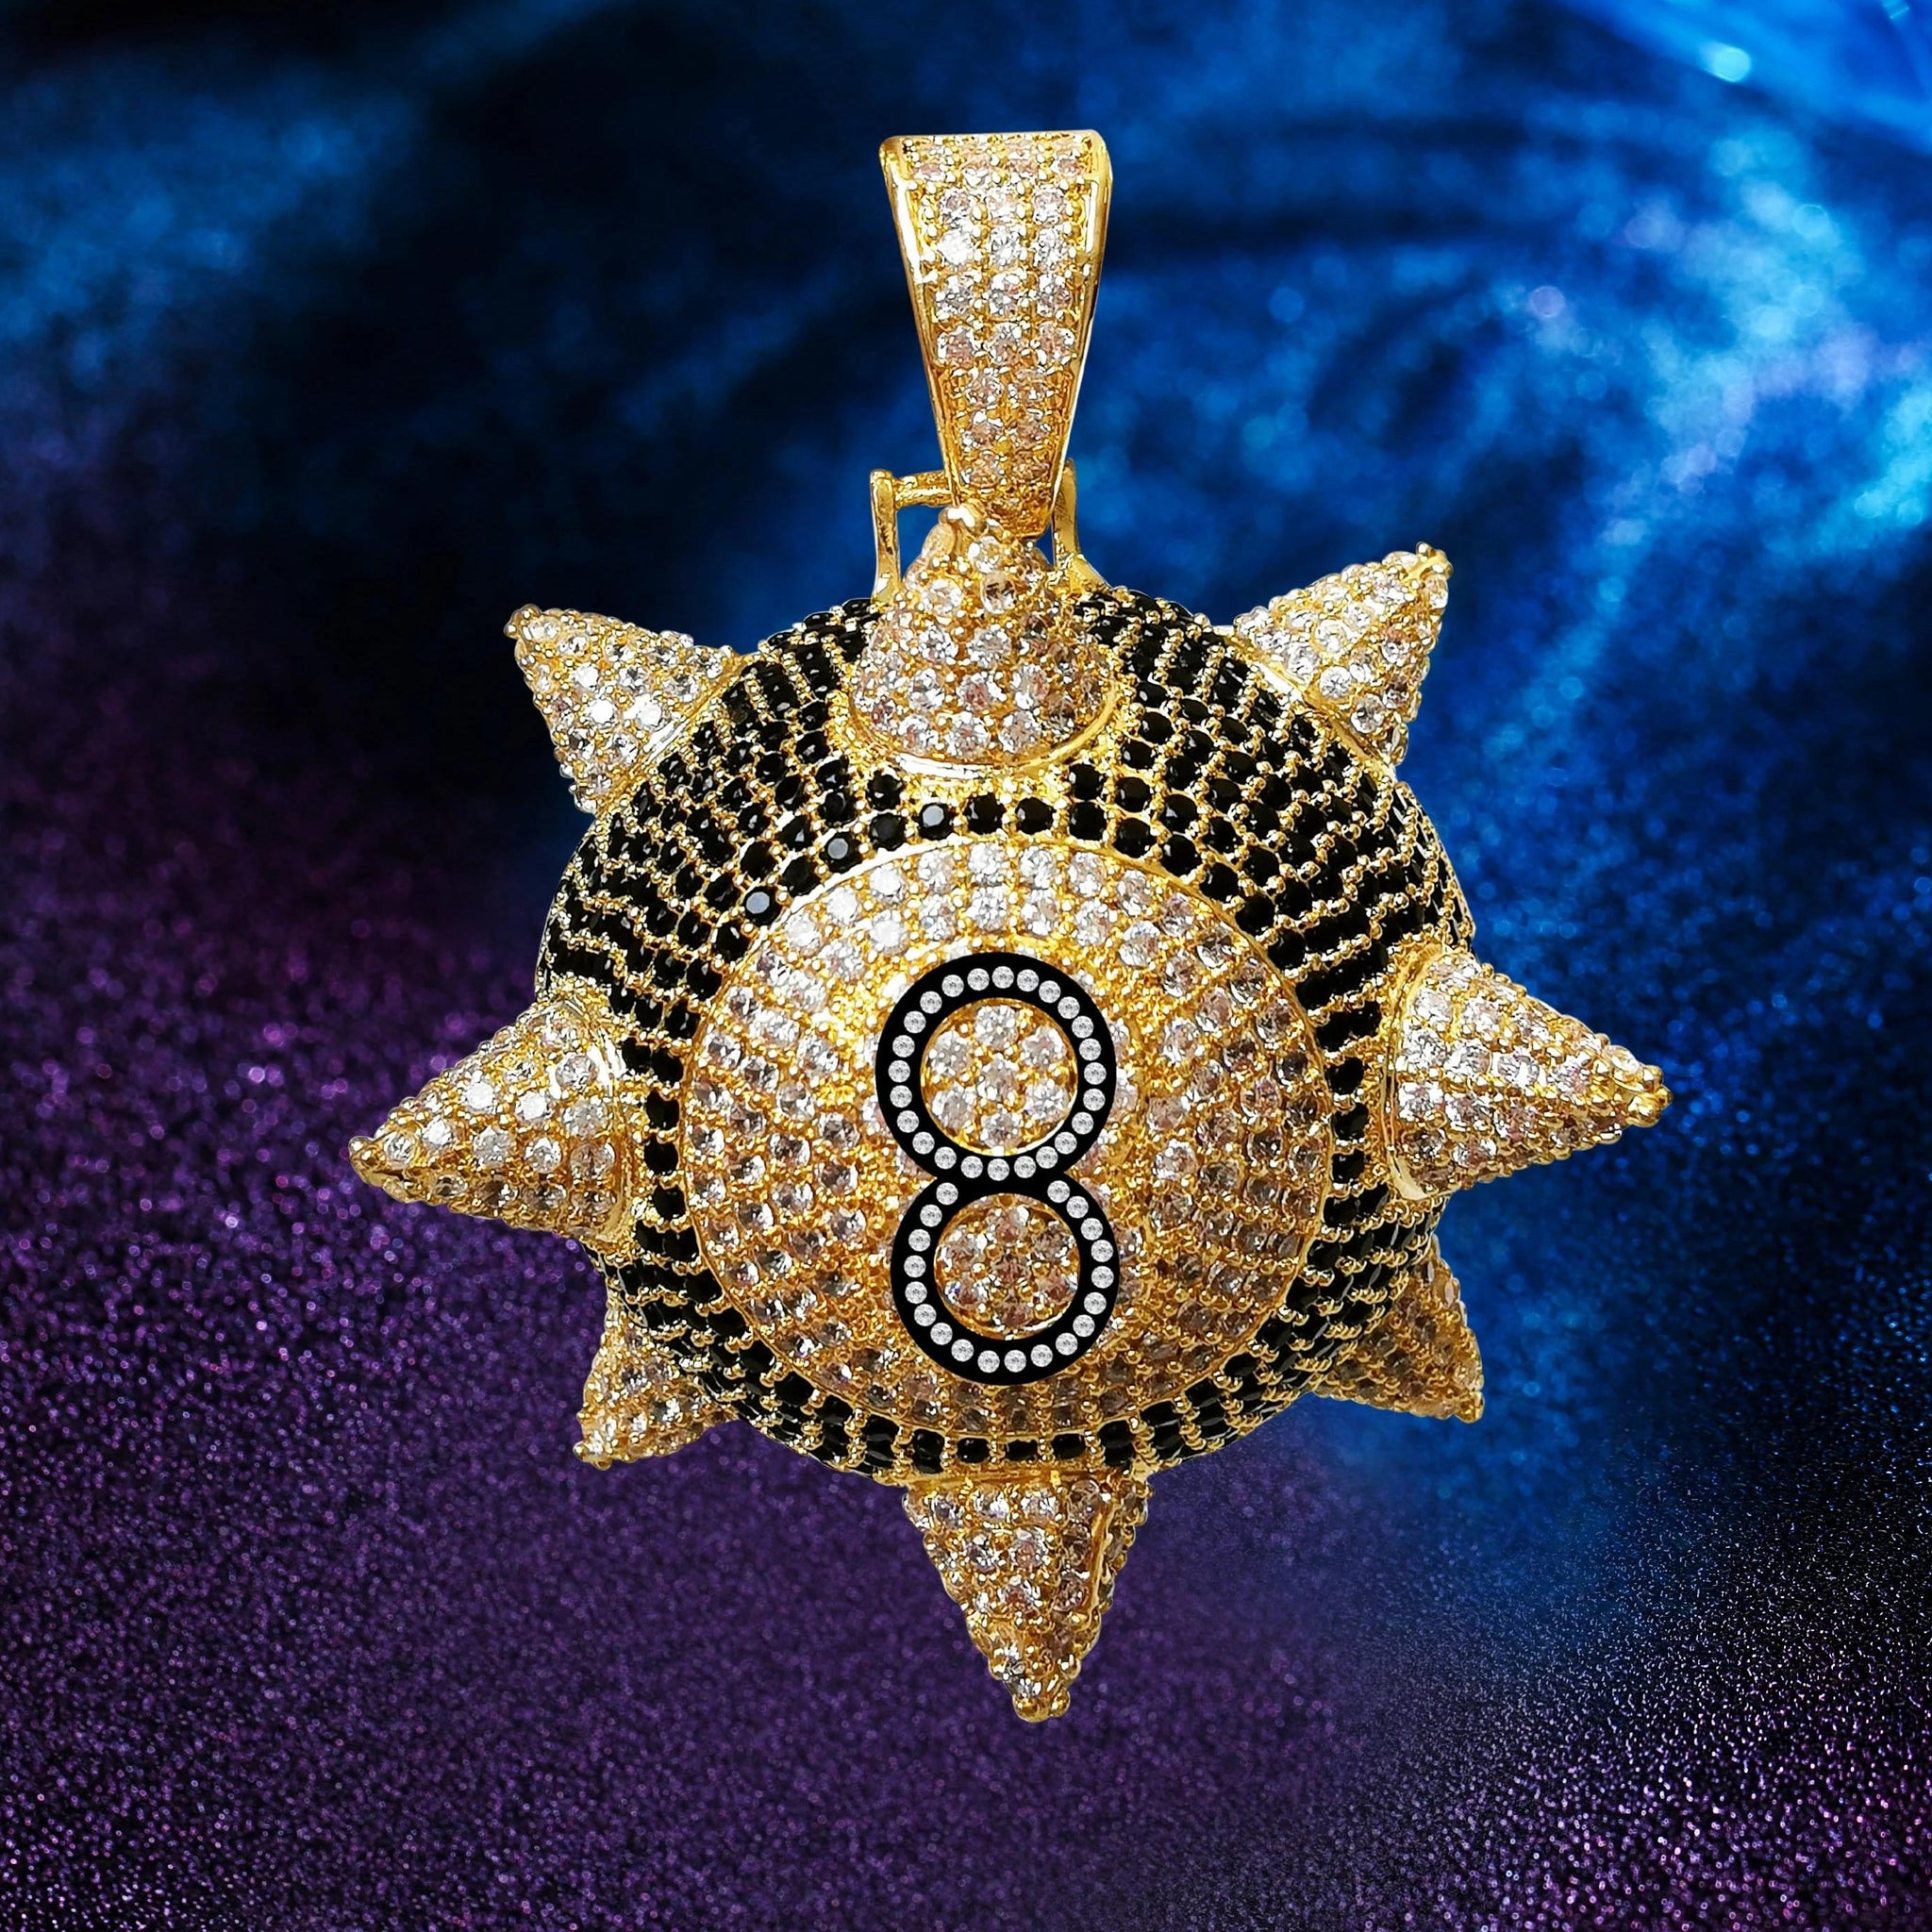 Trippie Spiked 8-Ball Pendant